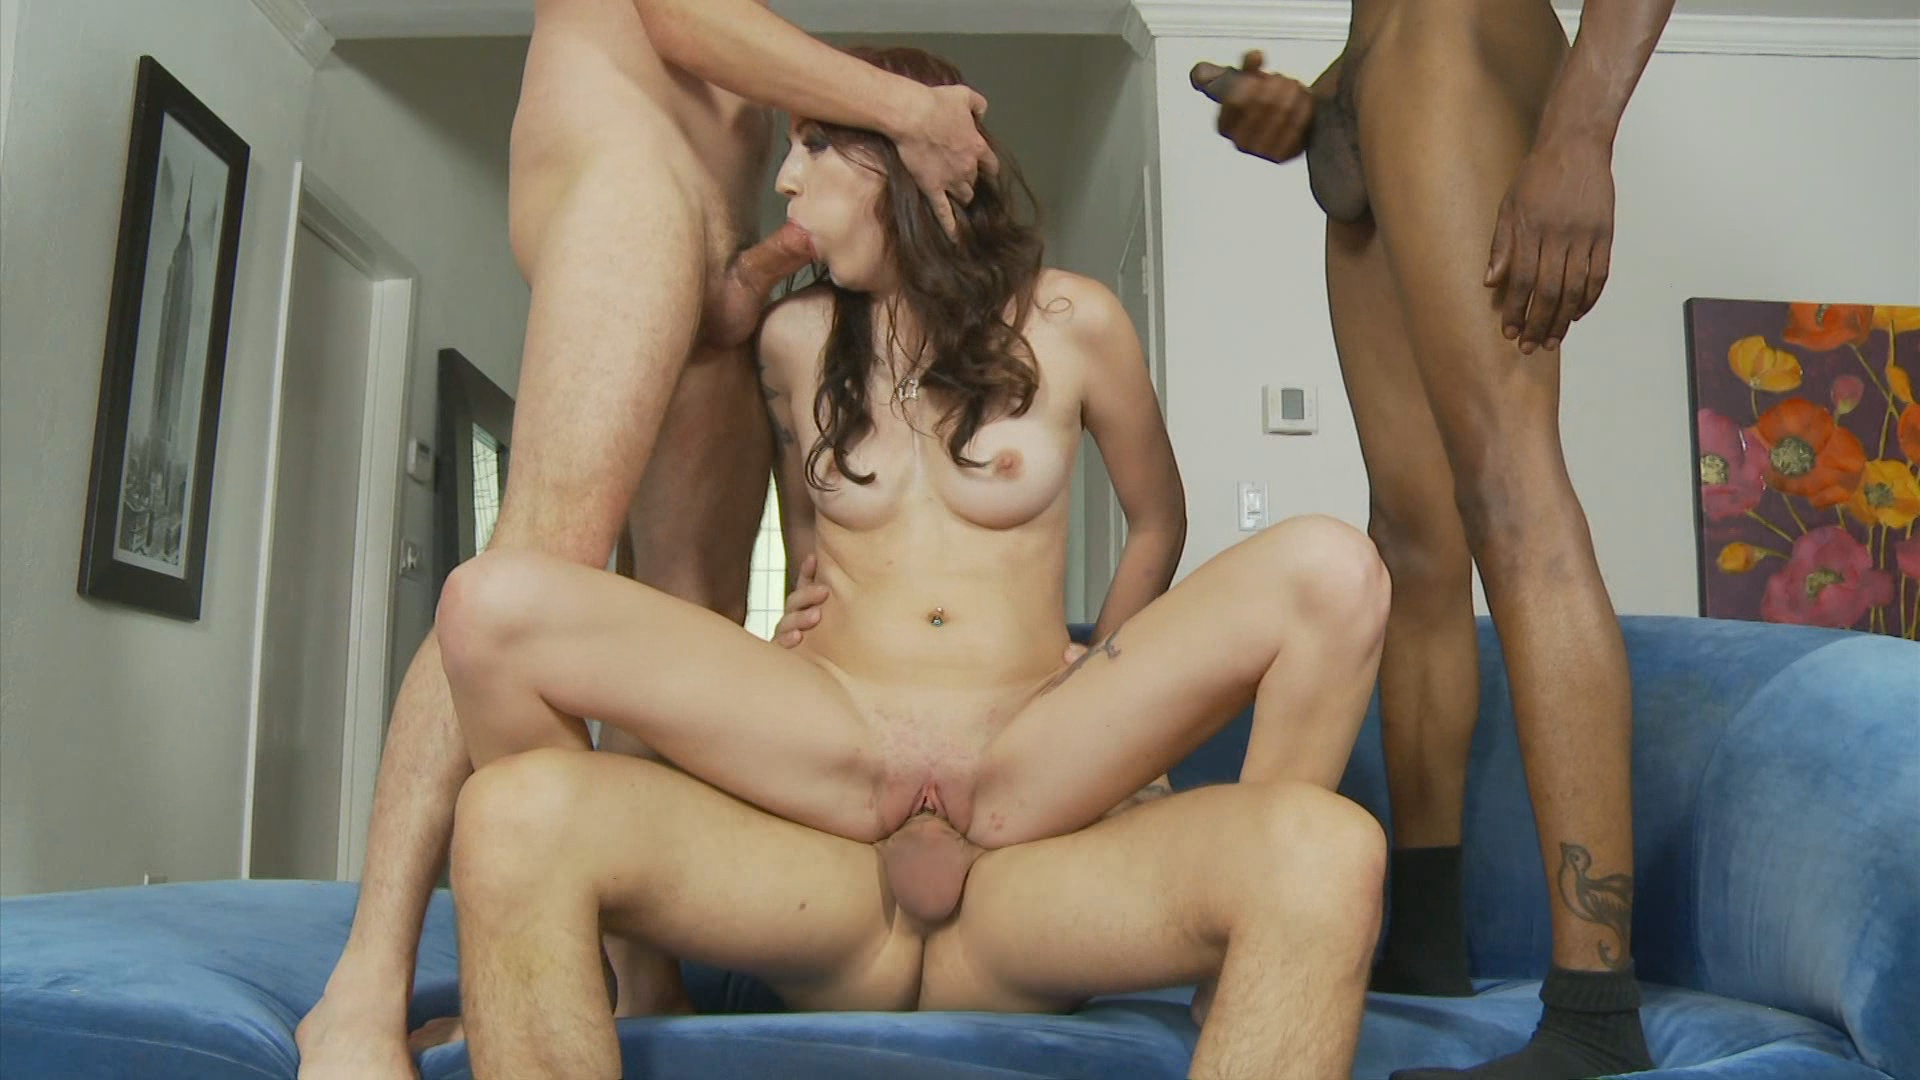 University Gang Bang 14 Xvideos